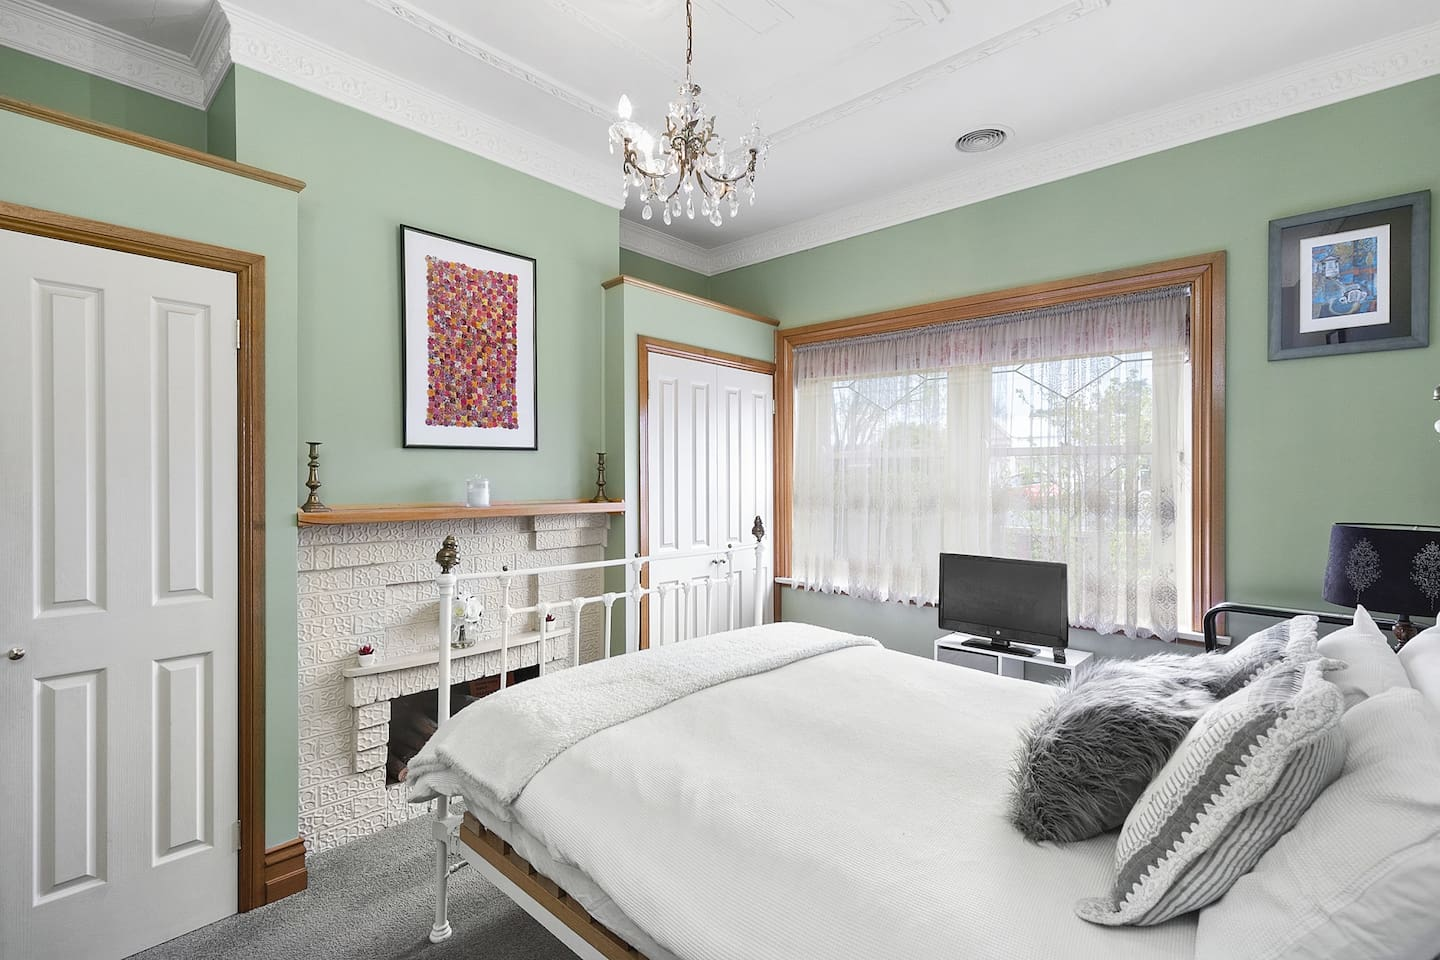 Calbung Stays Californian Bungalow Houses For Rent In Ballarat Central